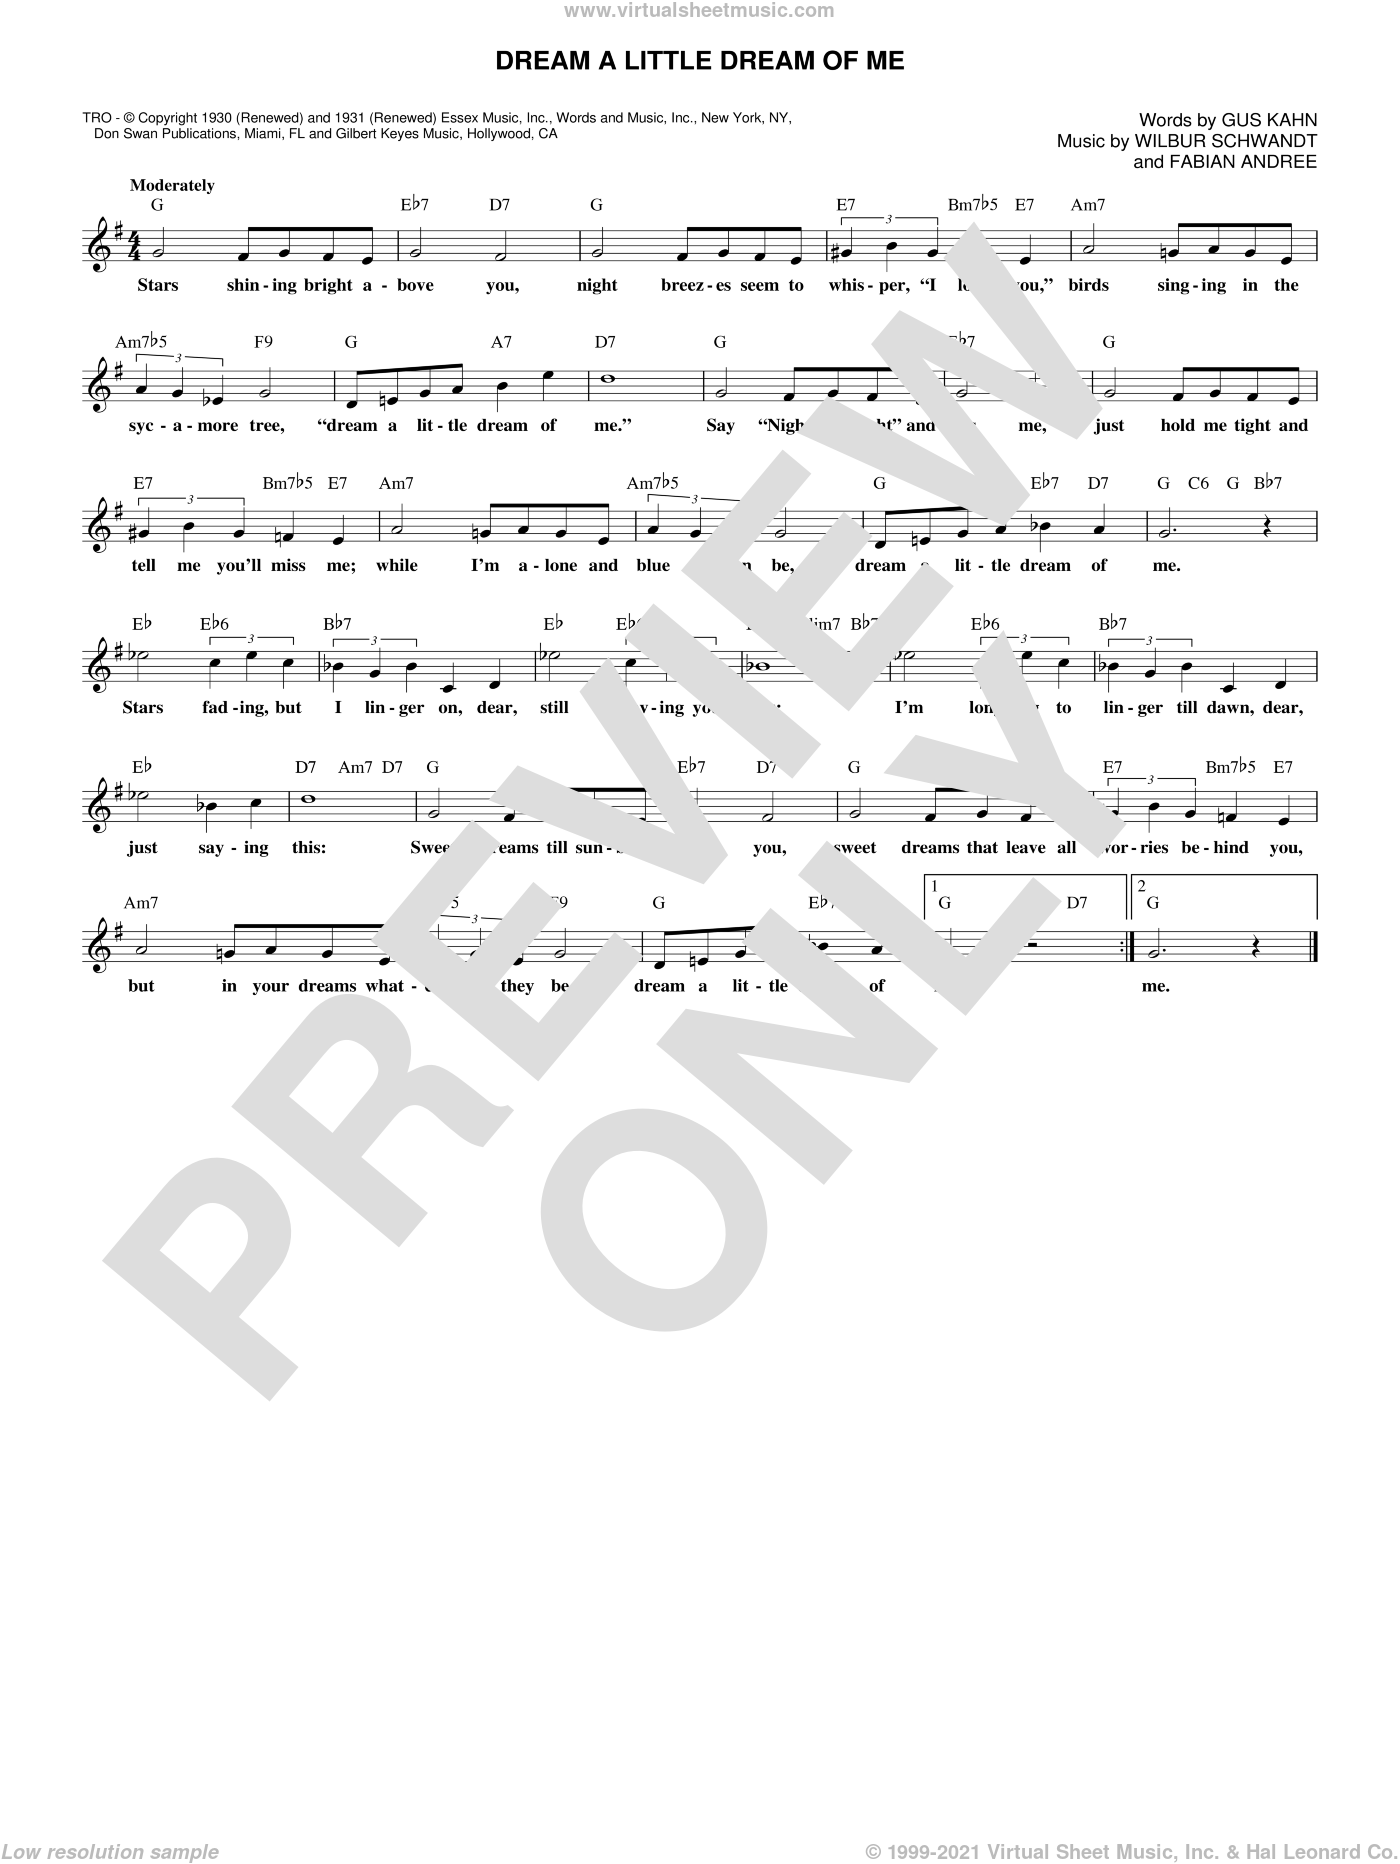 Dream A Little Dream Of Me sheet music for voice and other instruments (fake book) by The Mamas & The Papas, Fabian Andree, Gus Kahn and Wilbur Schwandt, intermediate